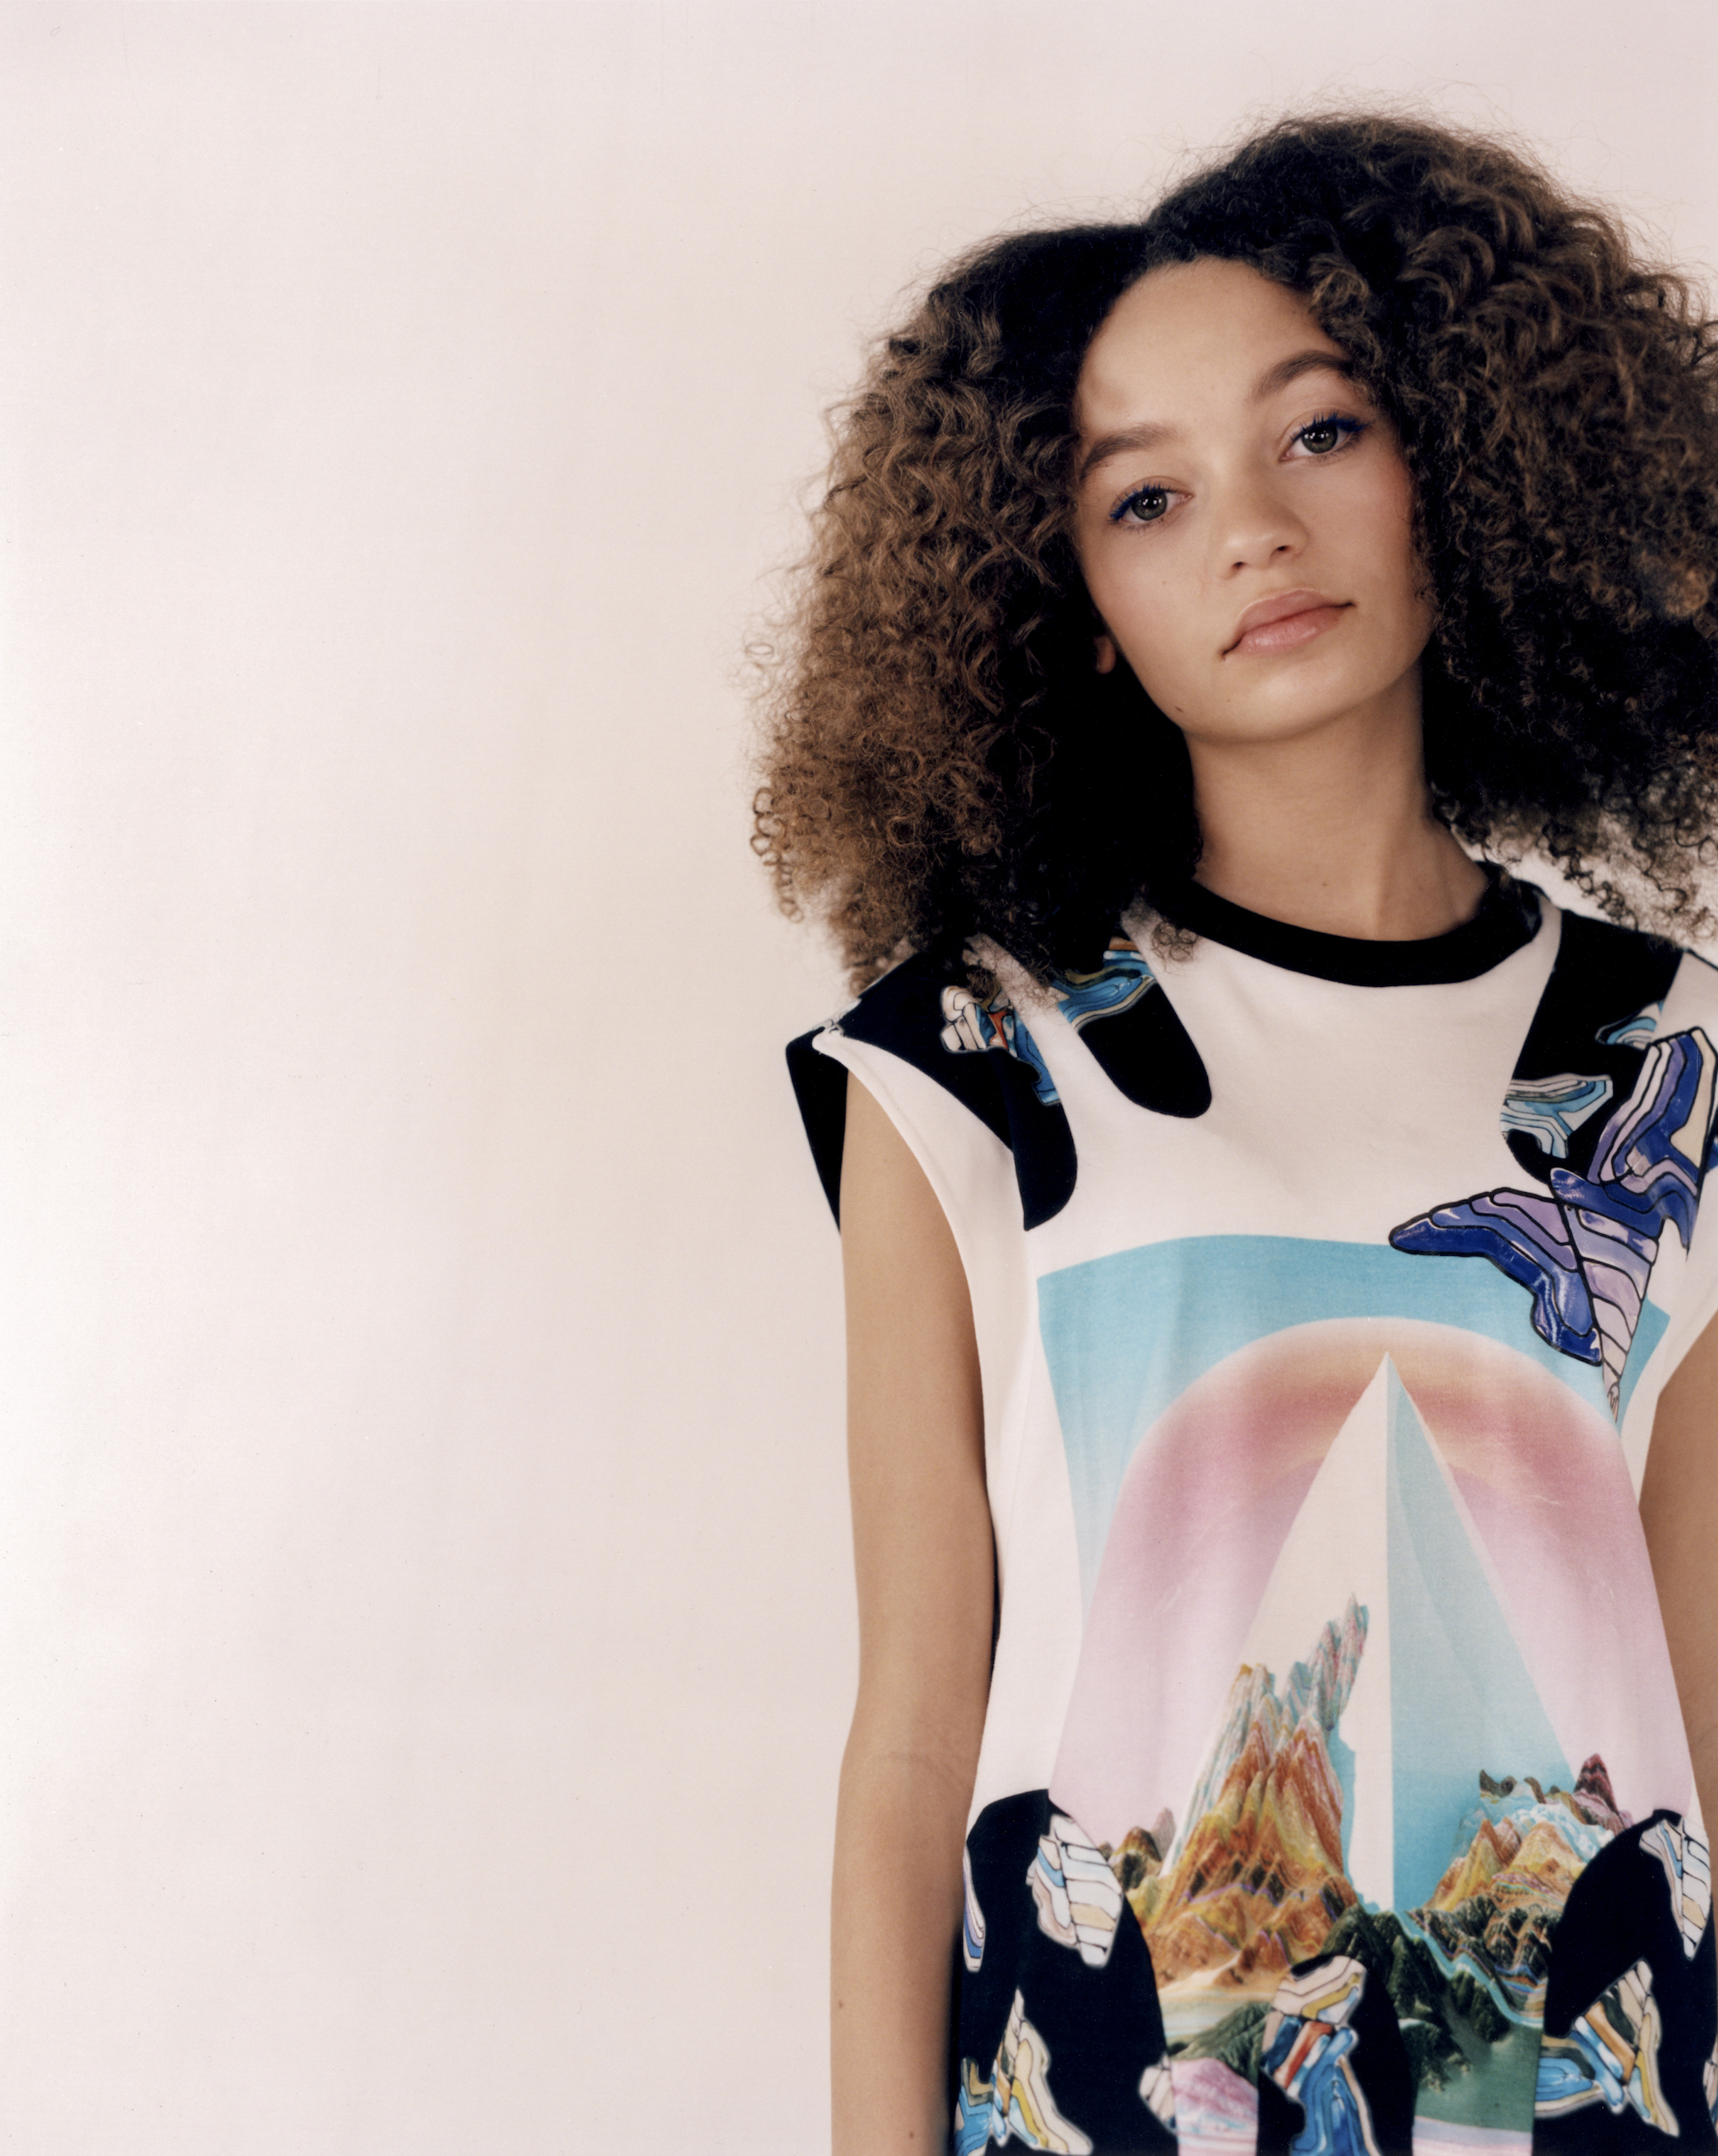 Thandie Newton's daughter Nico Parker, star of Dumbo in Wonderland's Spring 19 issue in graphic dress